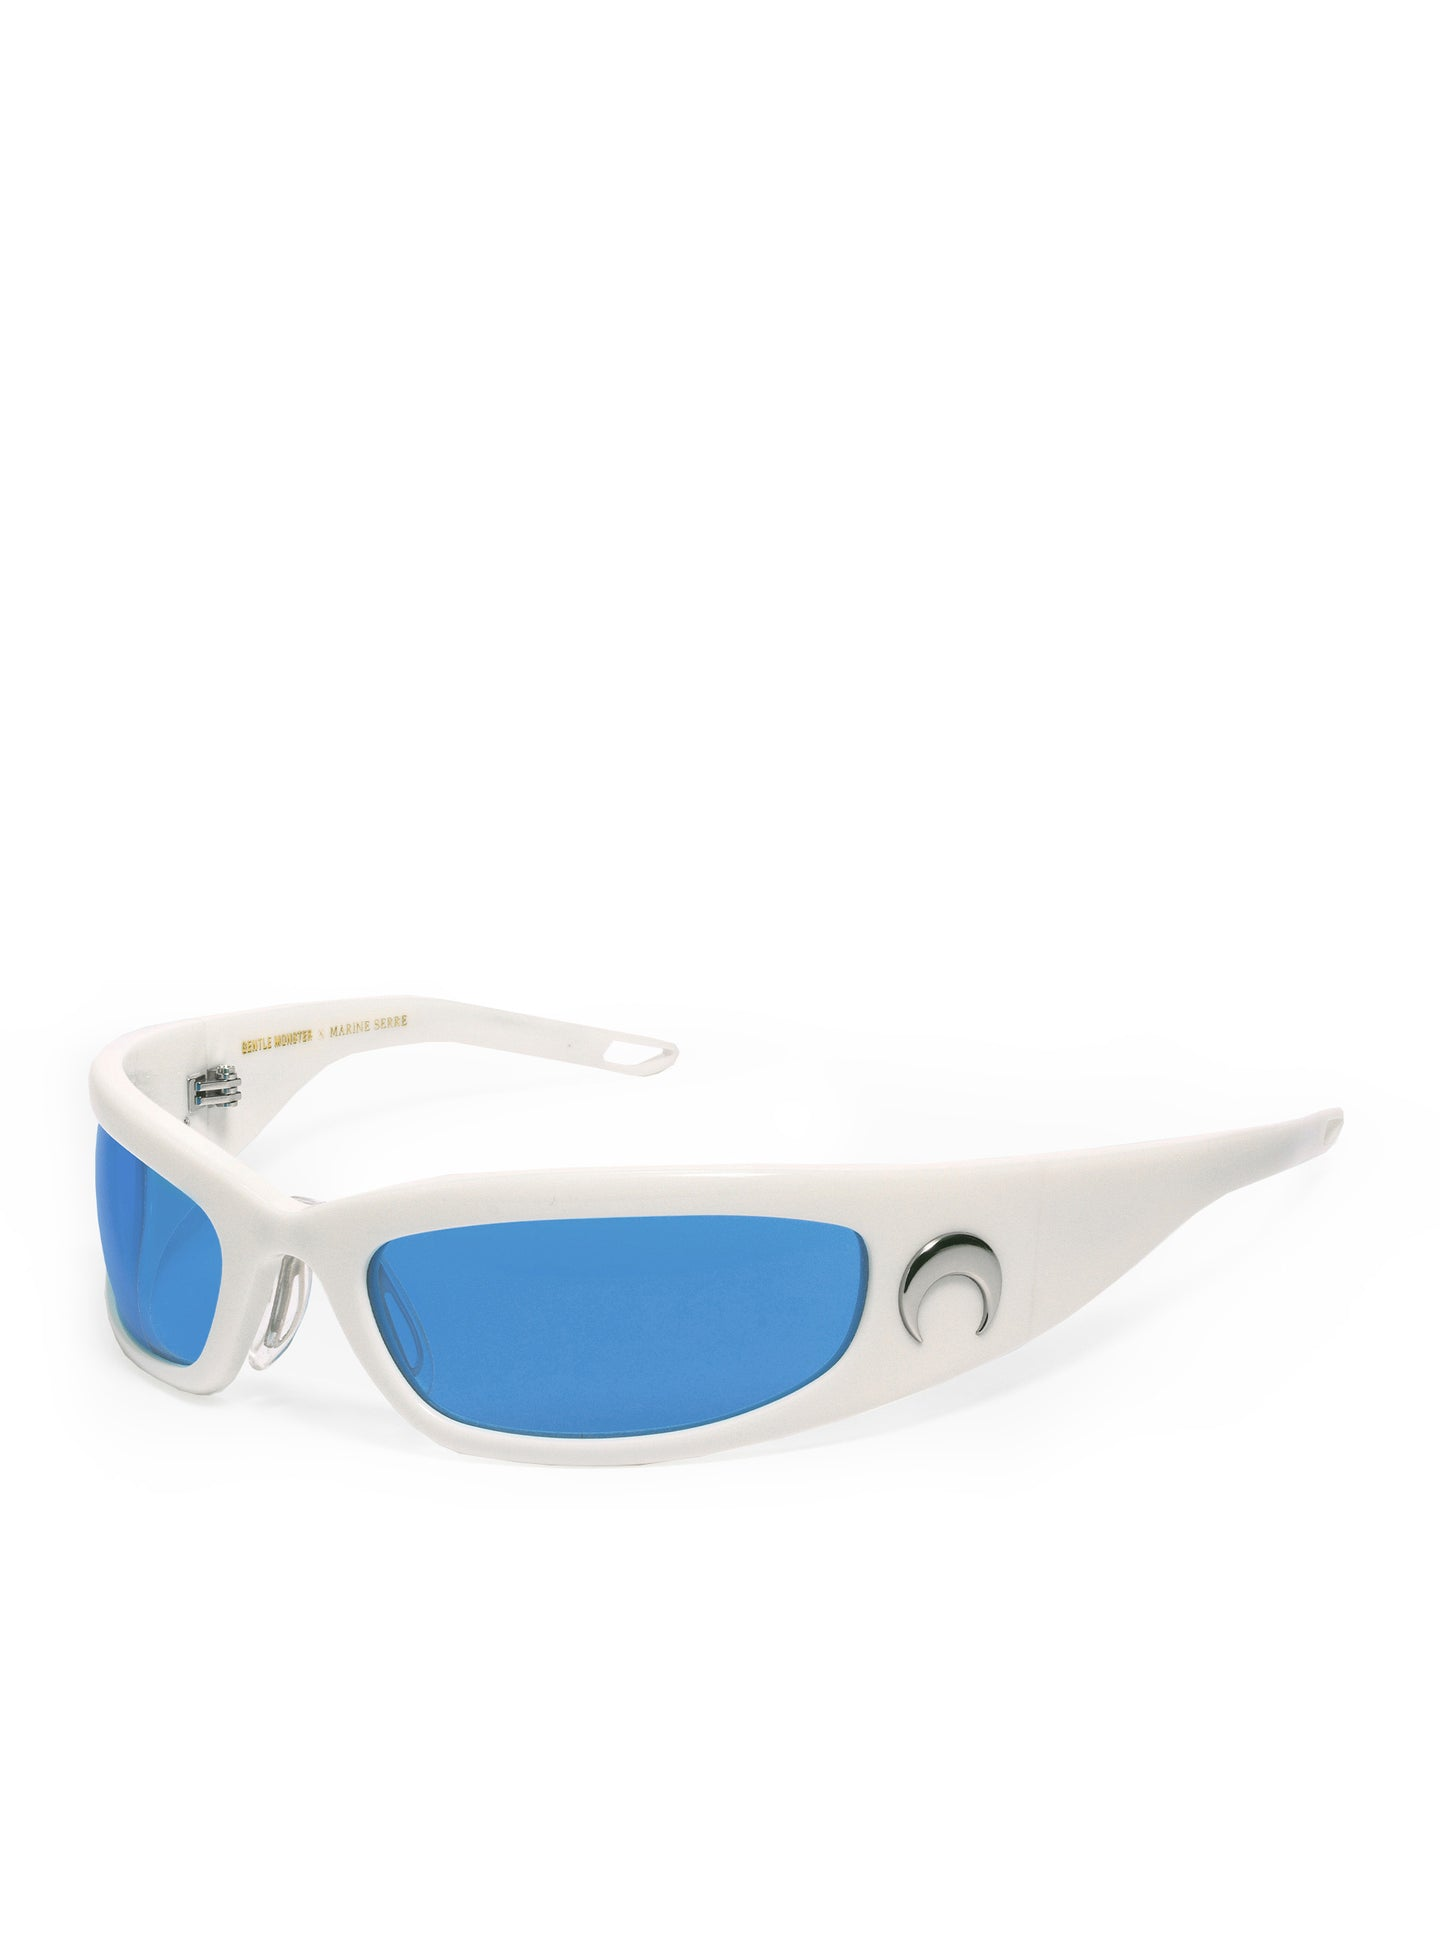 GM Curved Tinted Glasses Blue